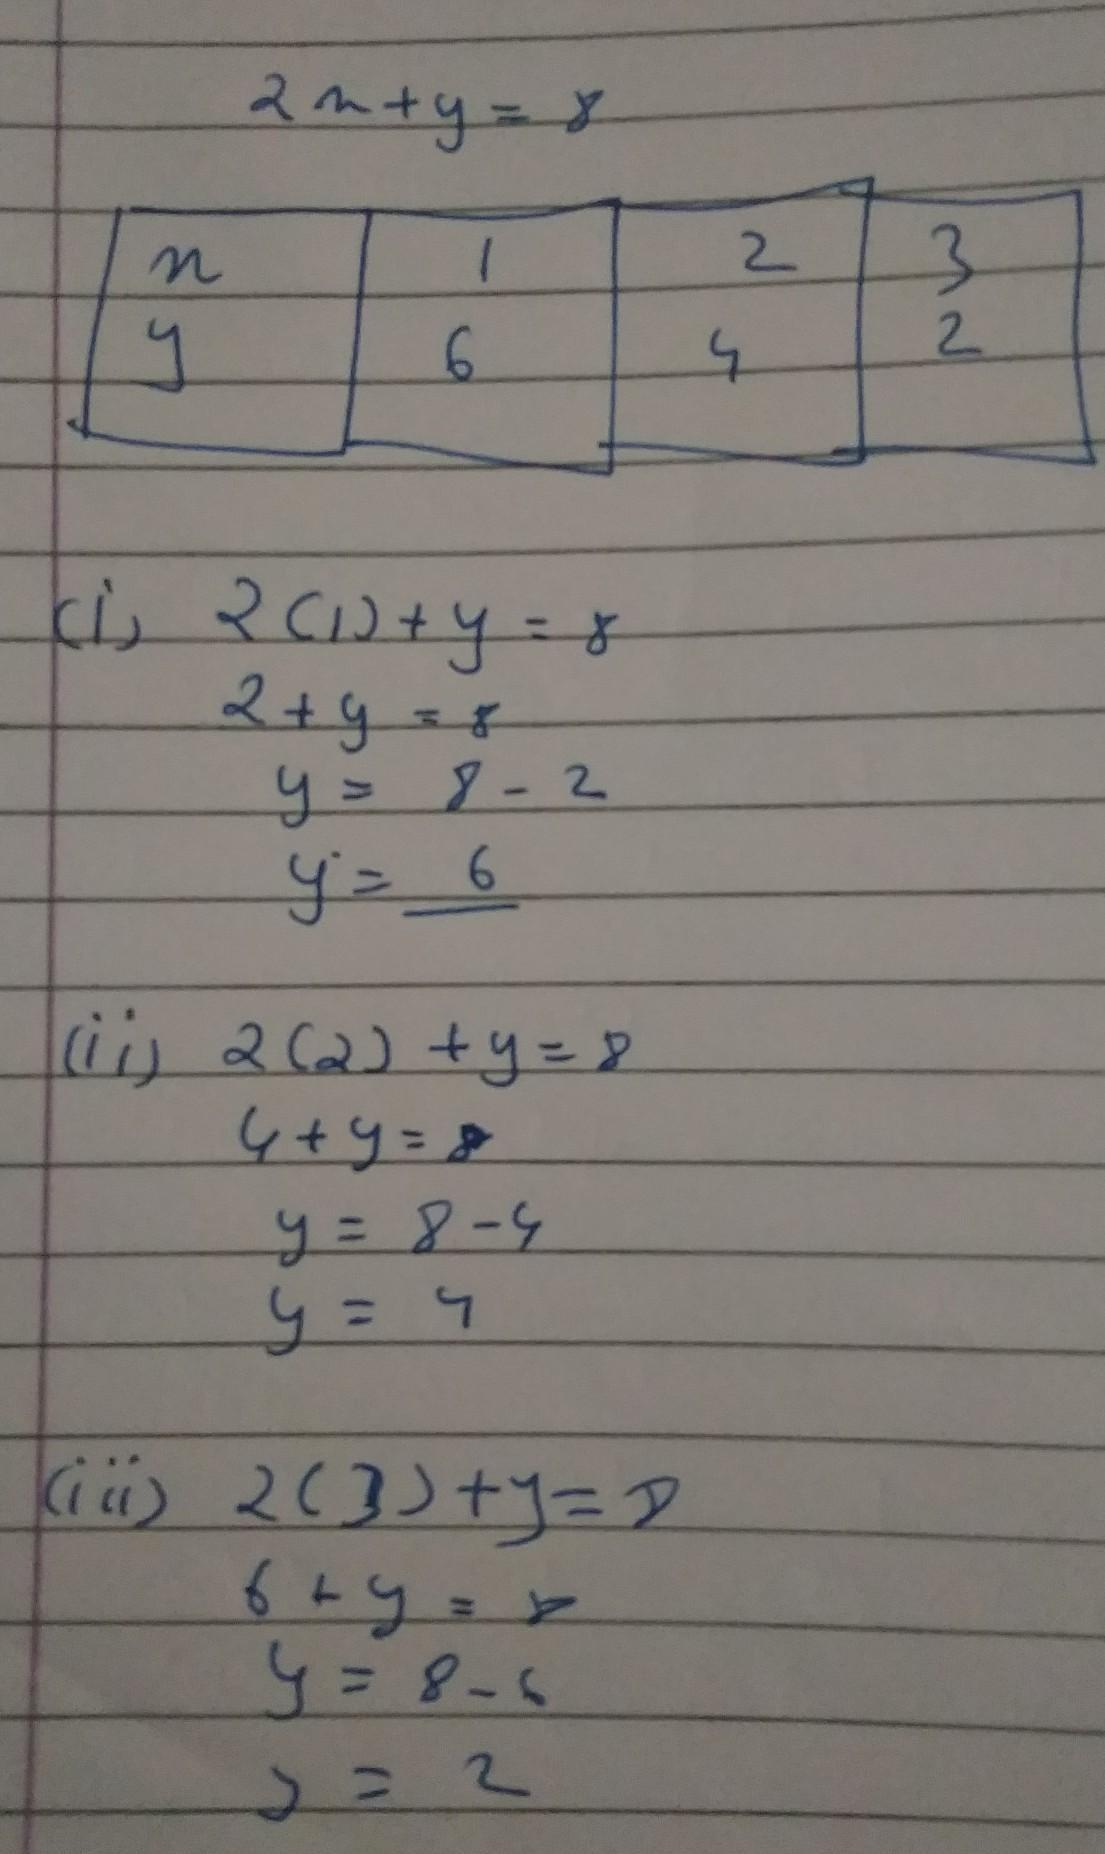 Draw The Graph Of Linear Equation 2x Y 8 On Cartesian